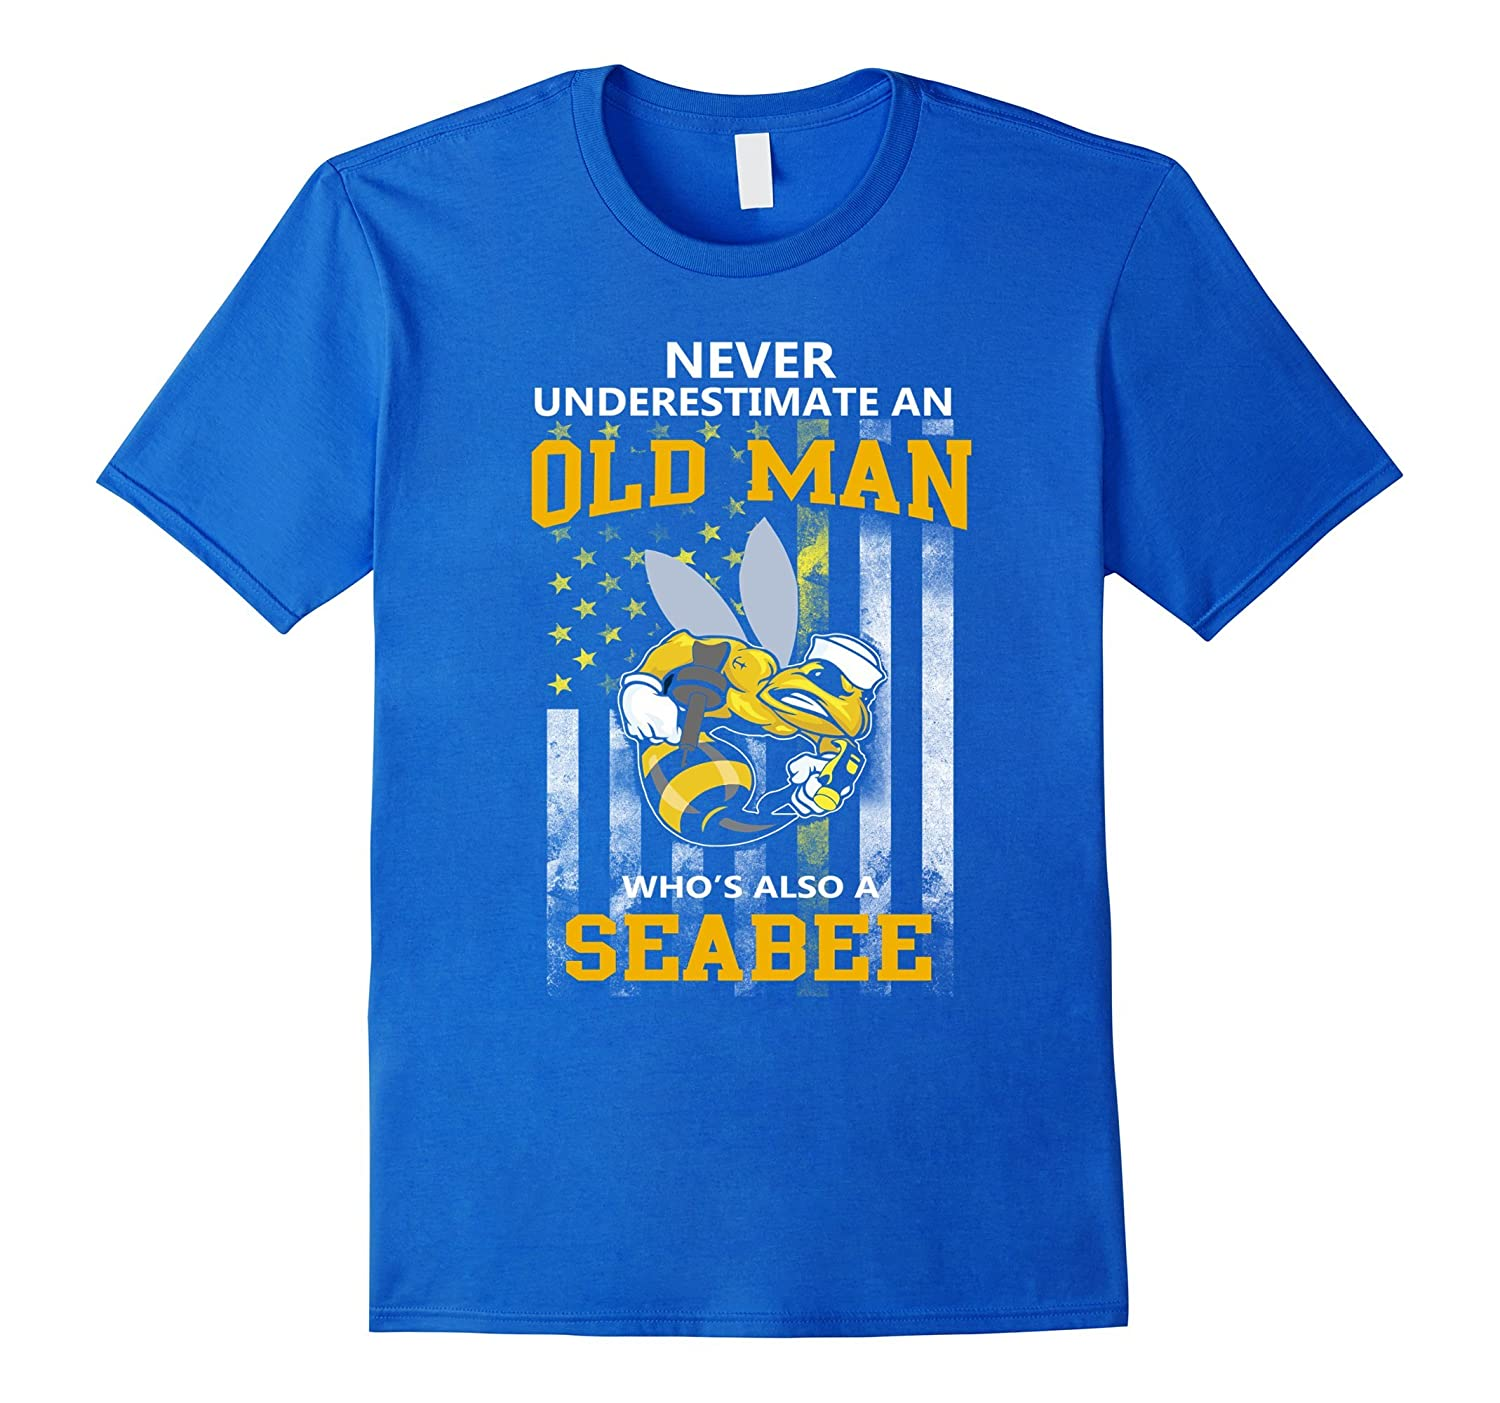 Navy Seabee Old Man T0shirt